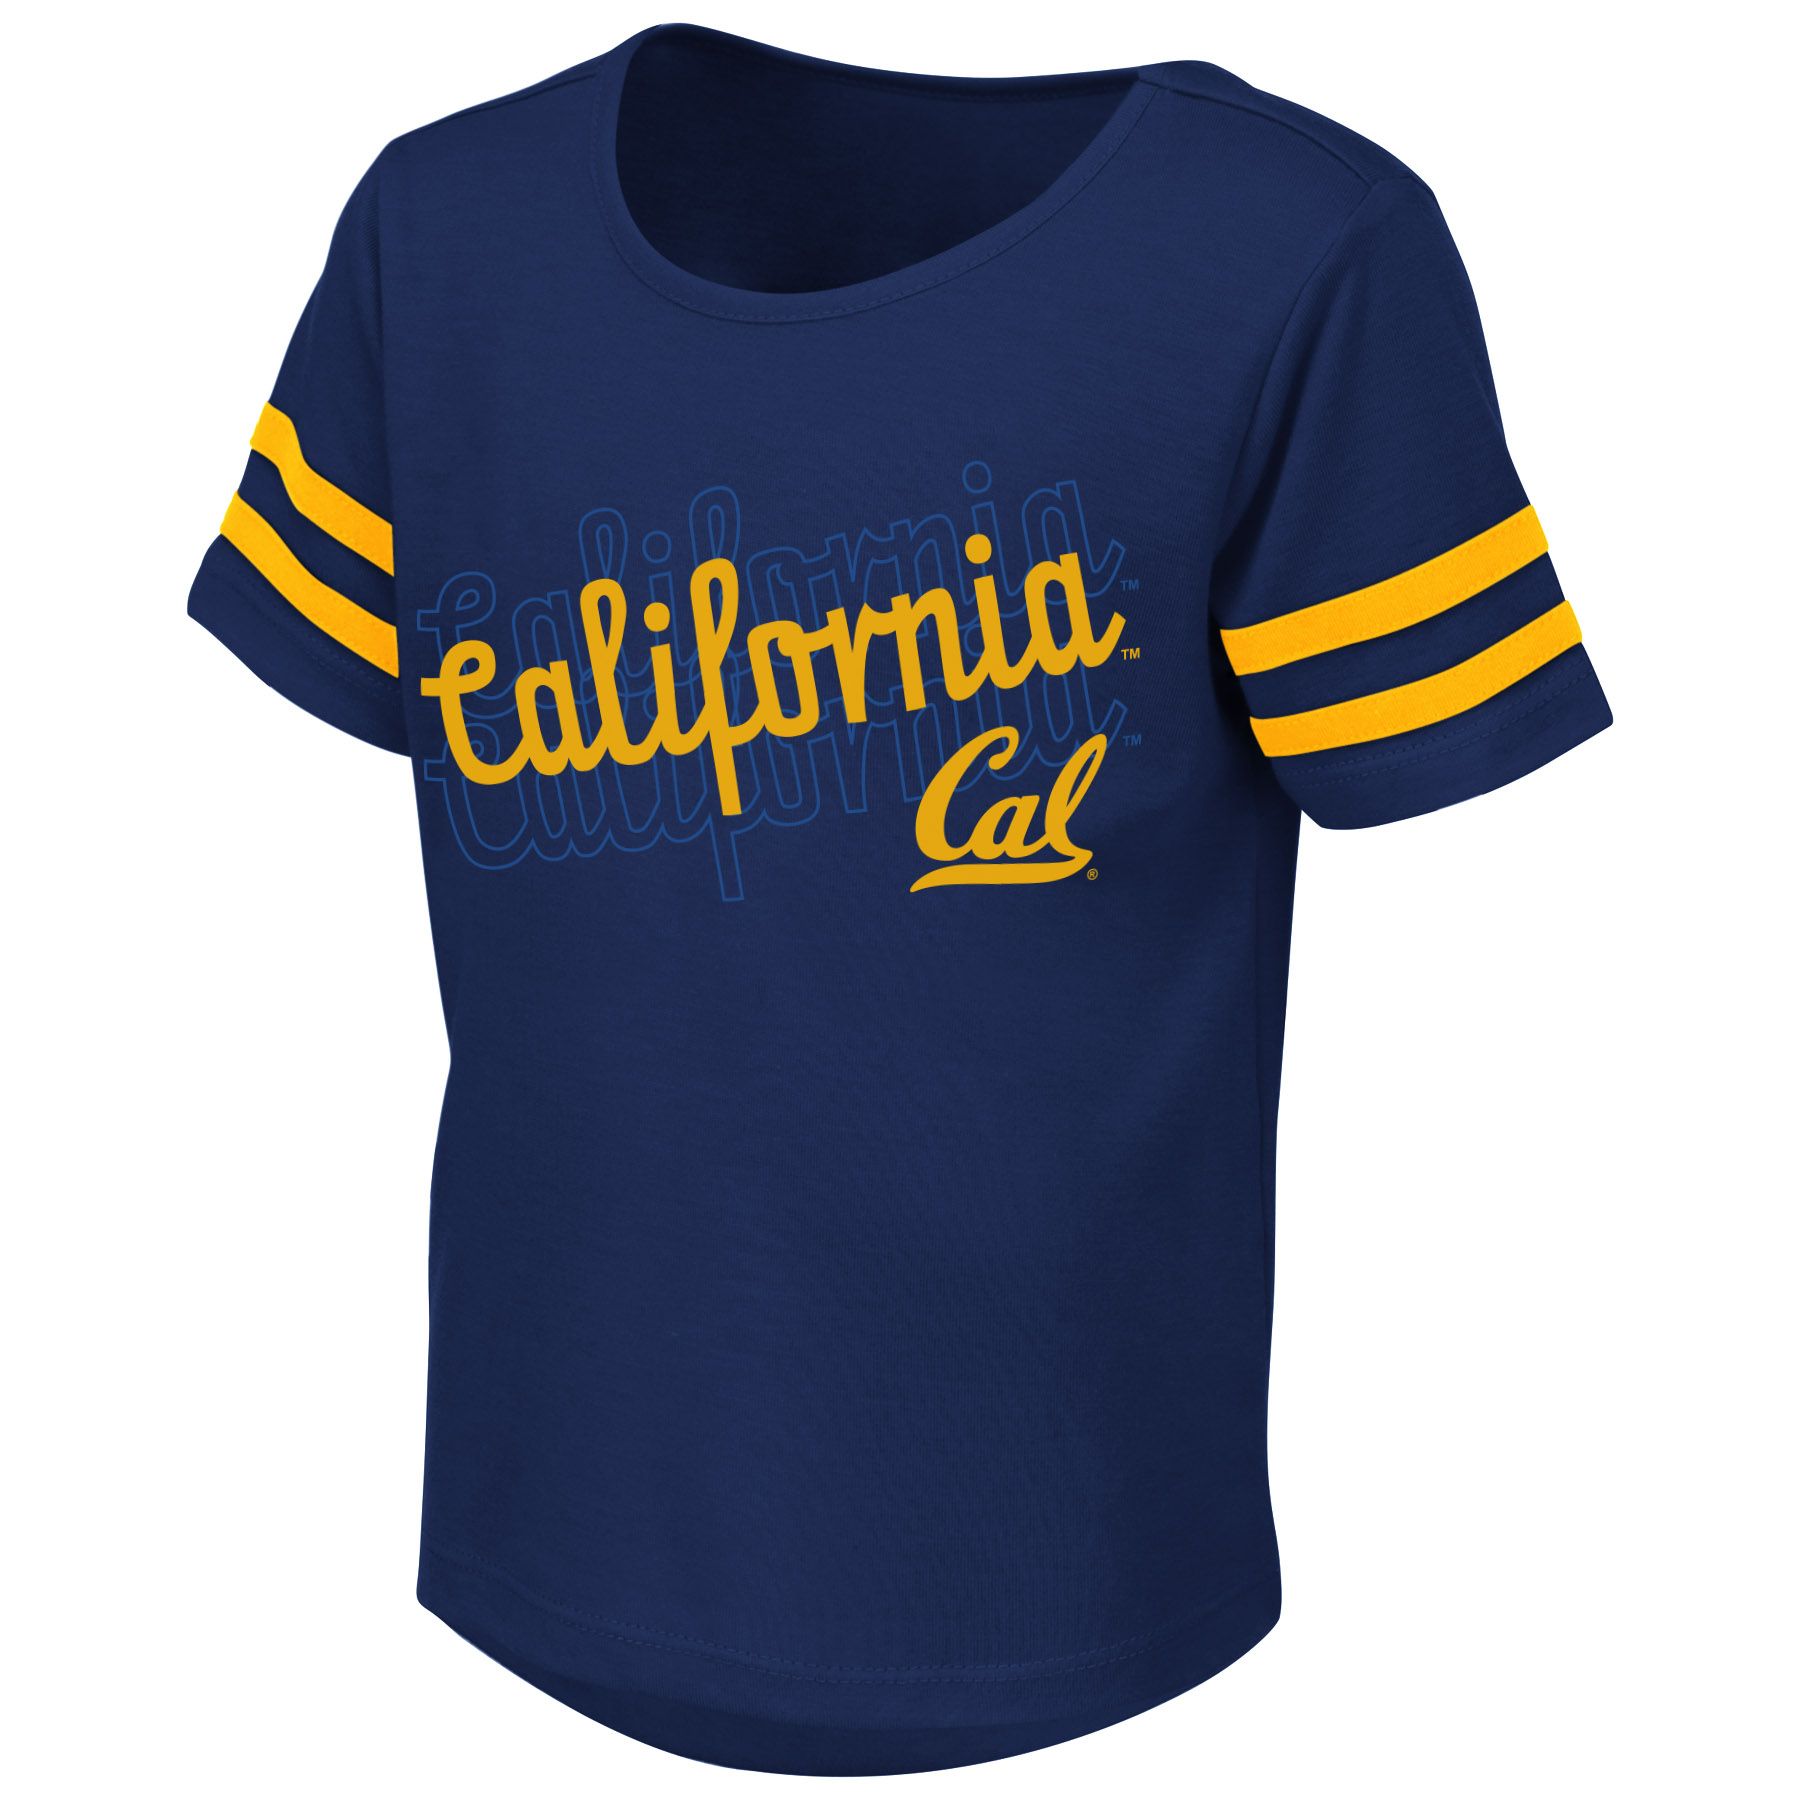 MD25-Cal Bears Hamburg Toddler Girls Tee S19